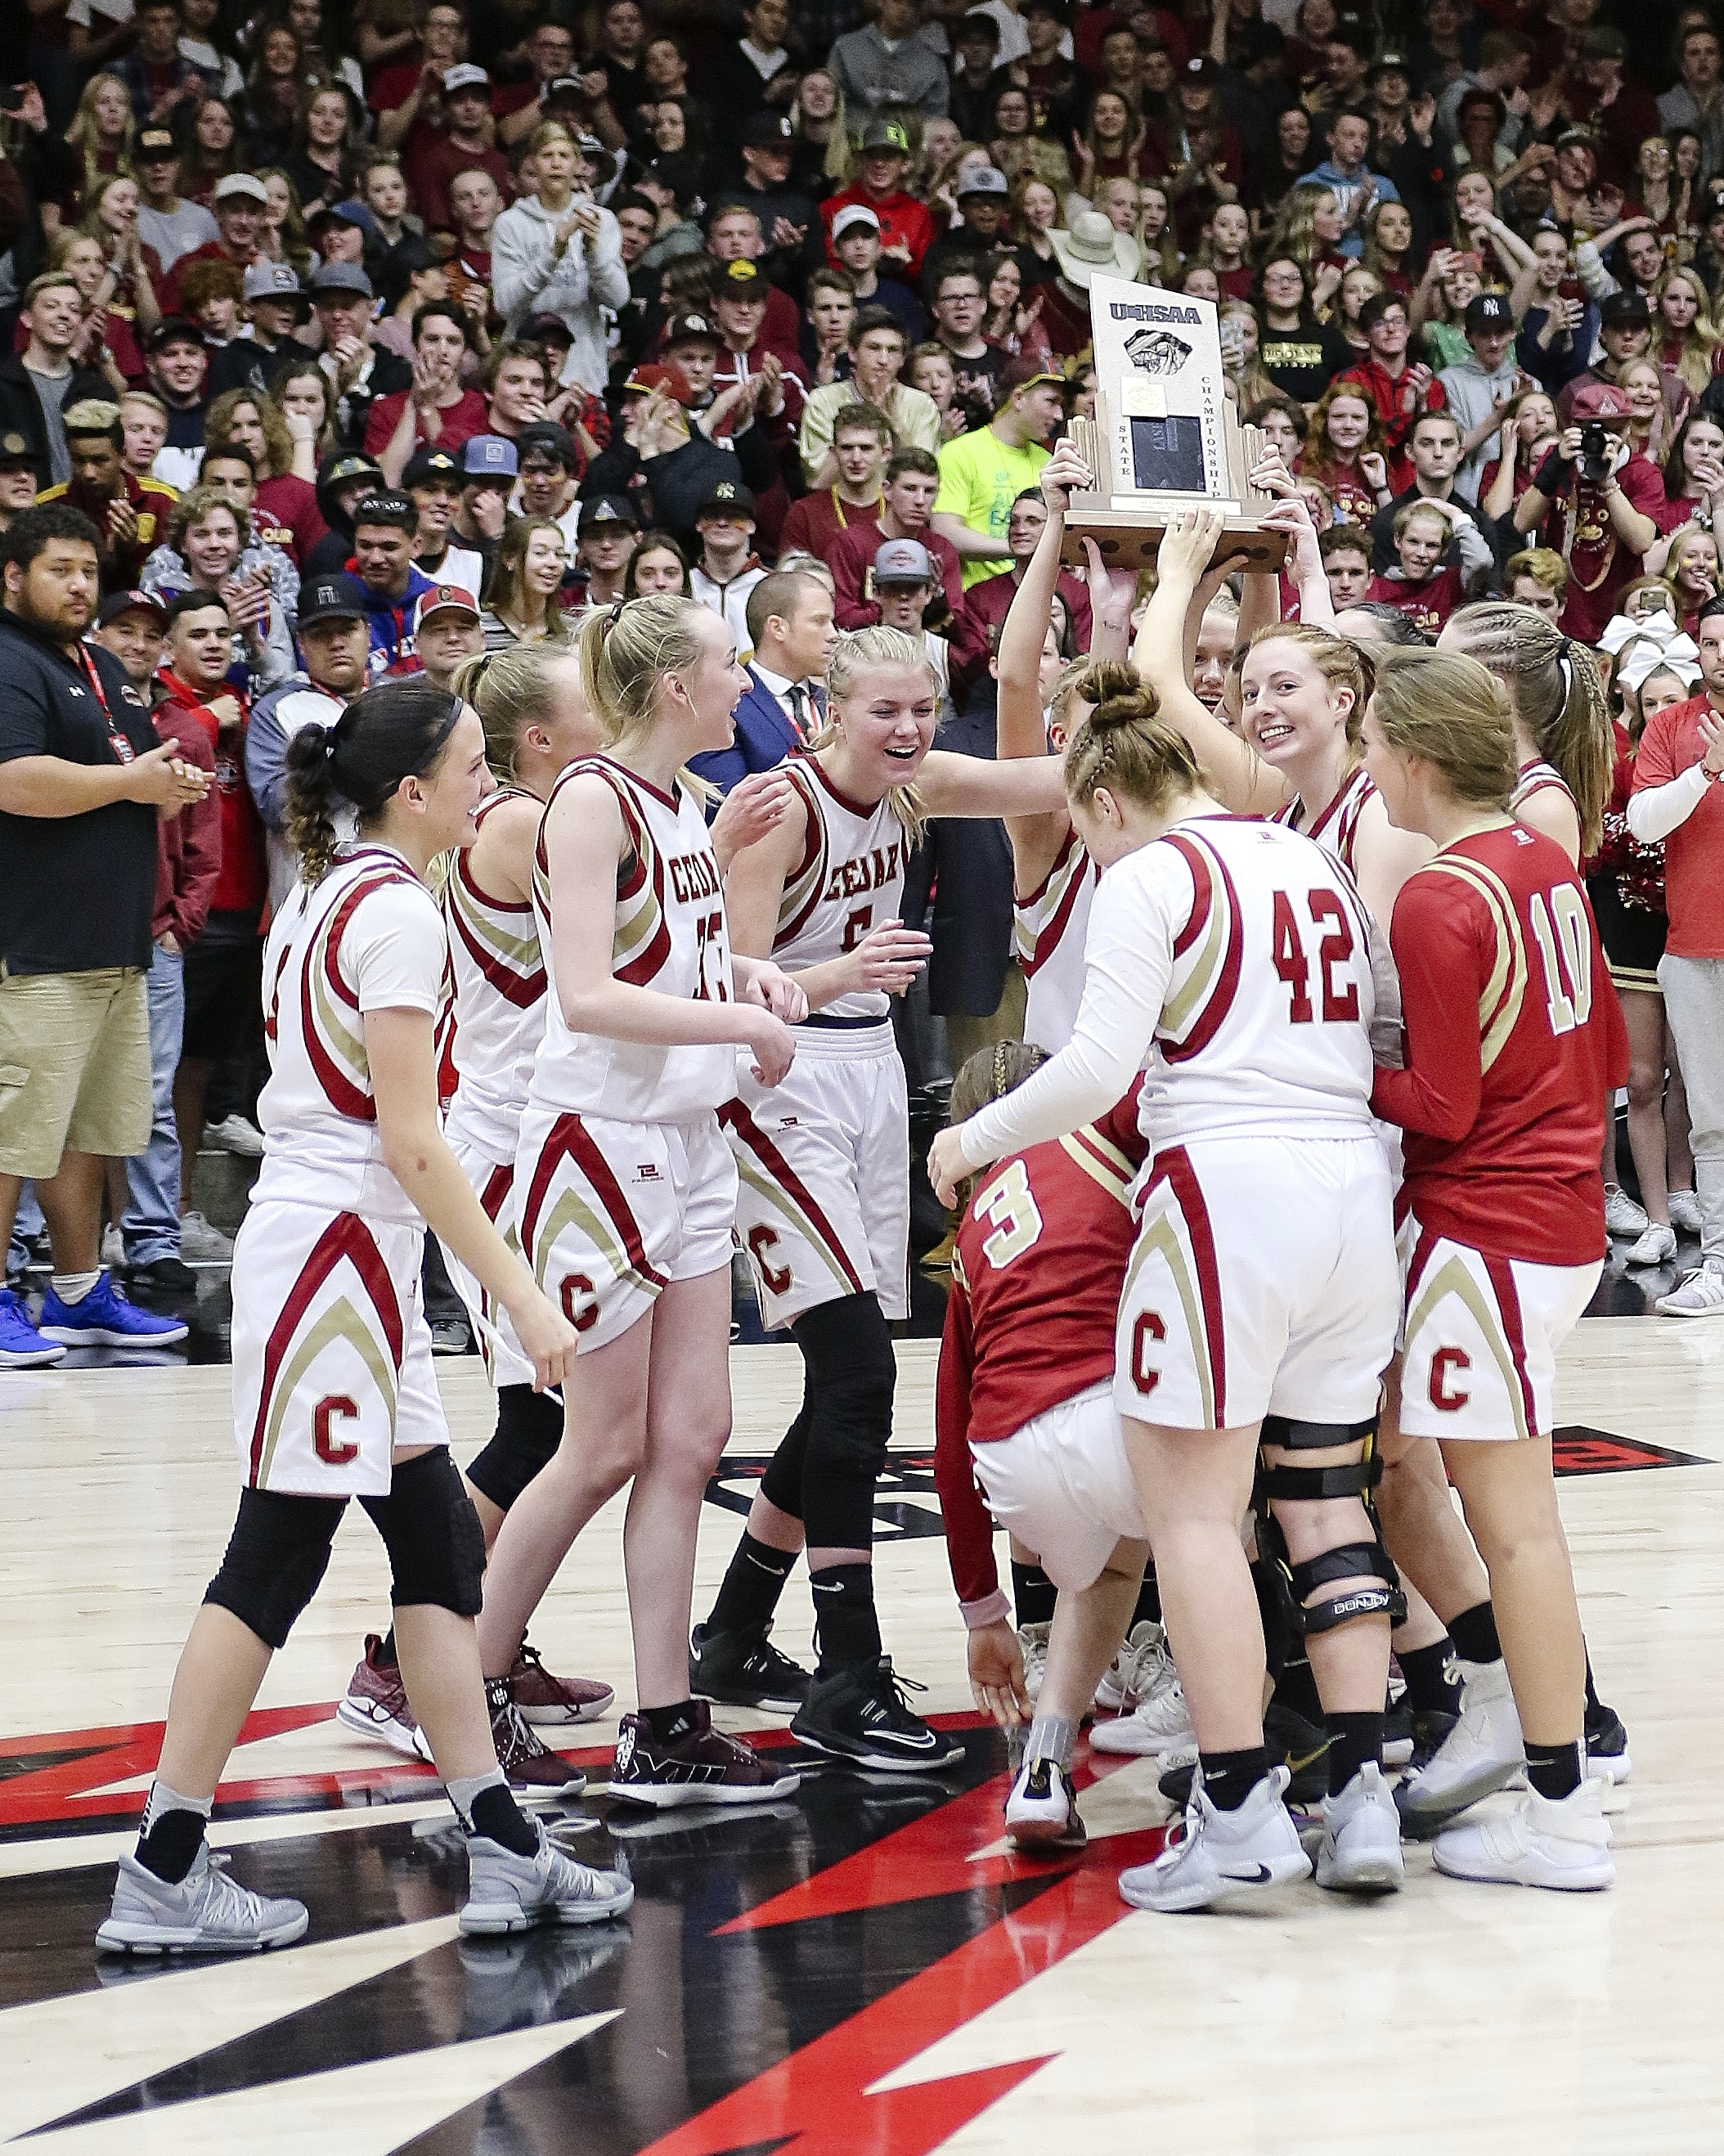 Cedar and Ridgeline compete in the 4A girls basketball state championship at Southern Utah University on Saturday.